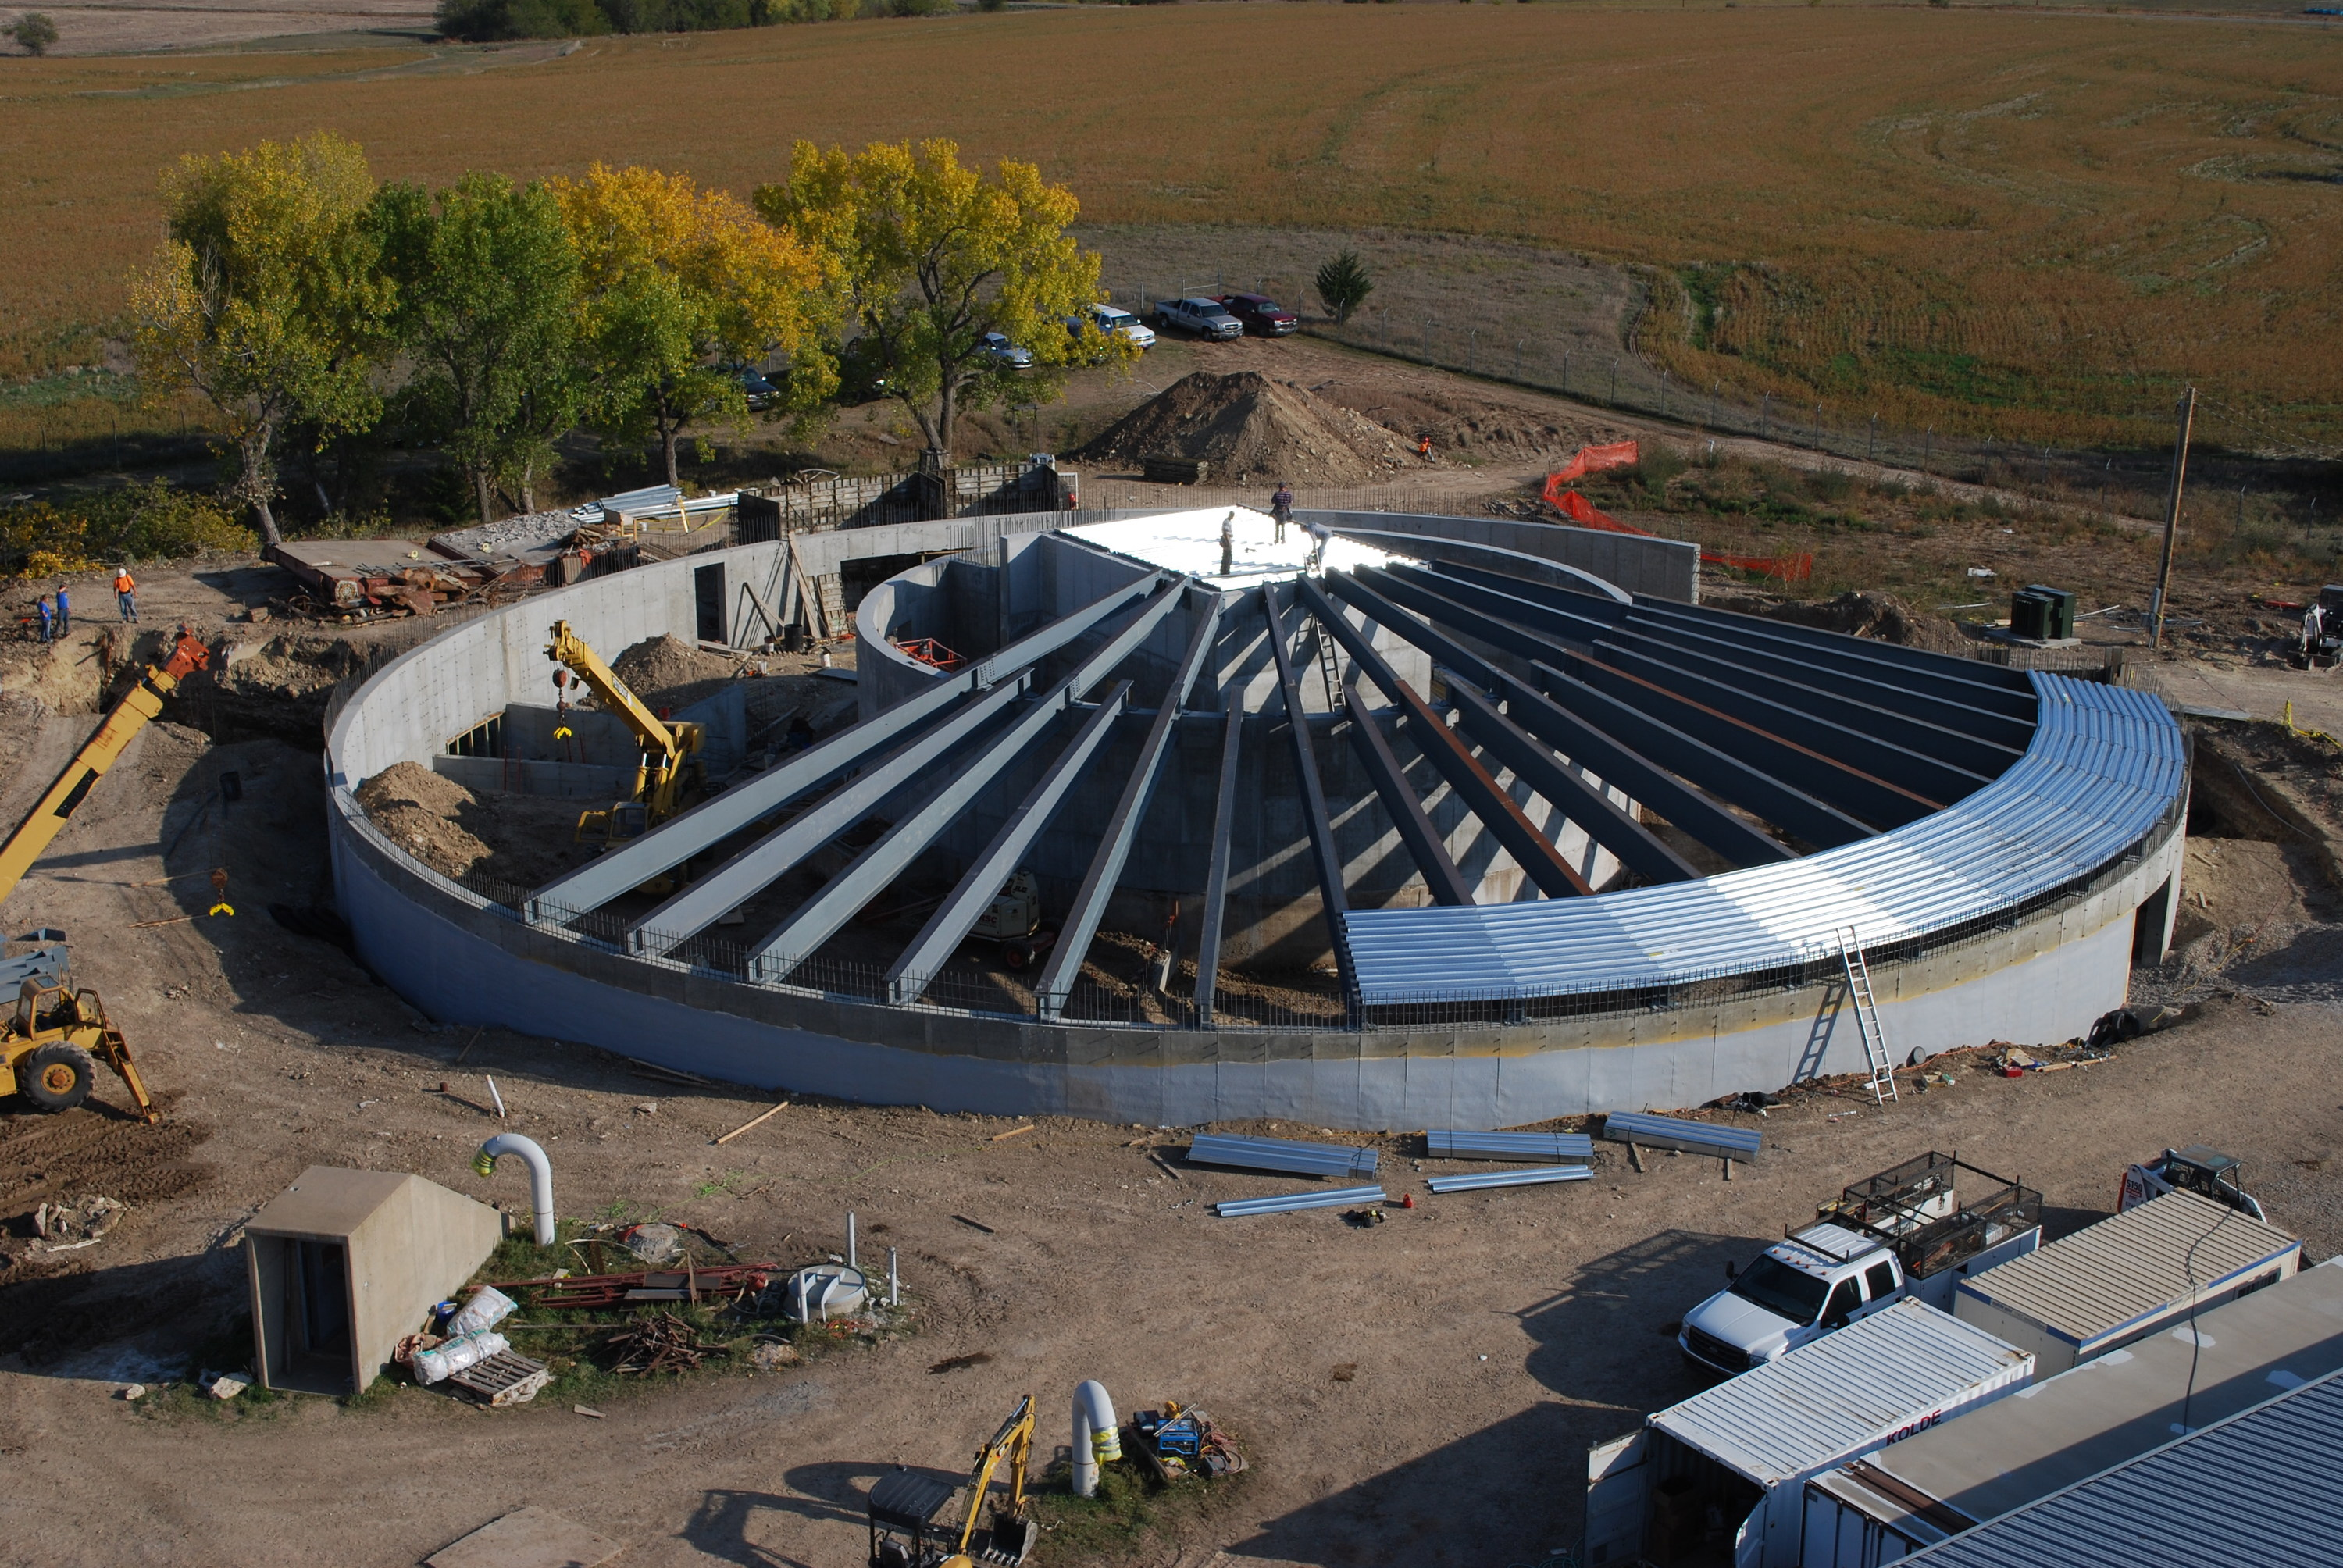 A former missile silo in Kansas is turning into a luxurious survival condo for the super rich